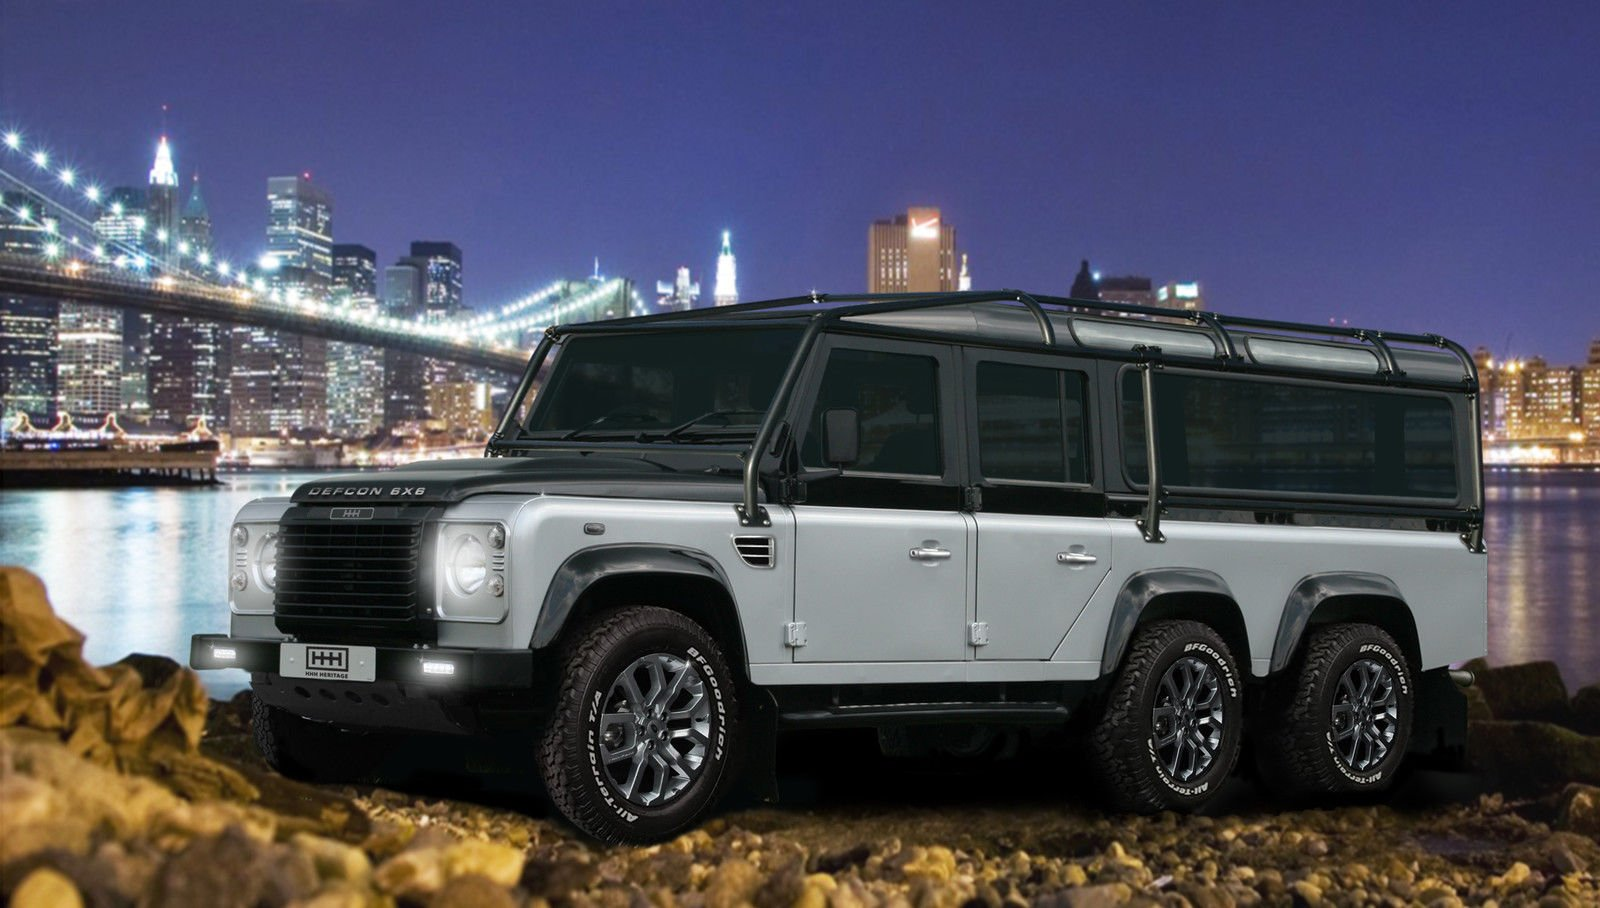 Land Rover Defender Luxury >> Got $585,000? This Land Rover Defcon 6X6 Defender is for Sale - 95 Octane